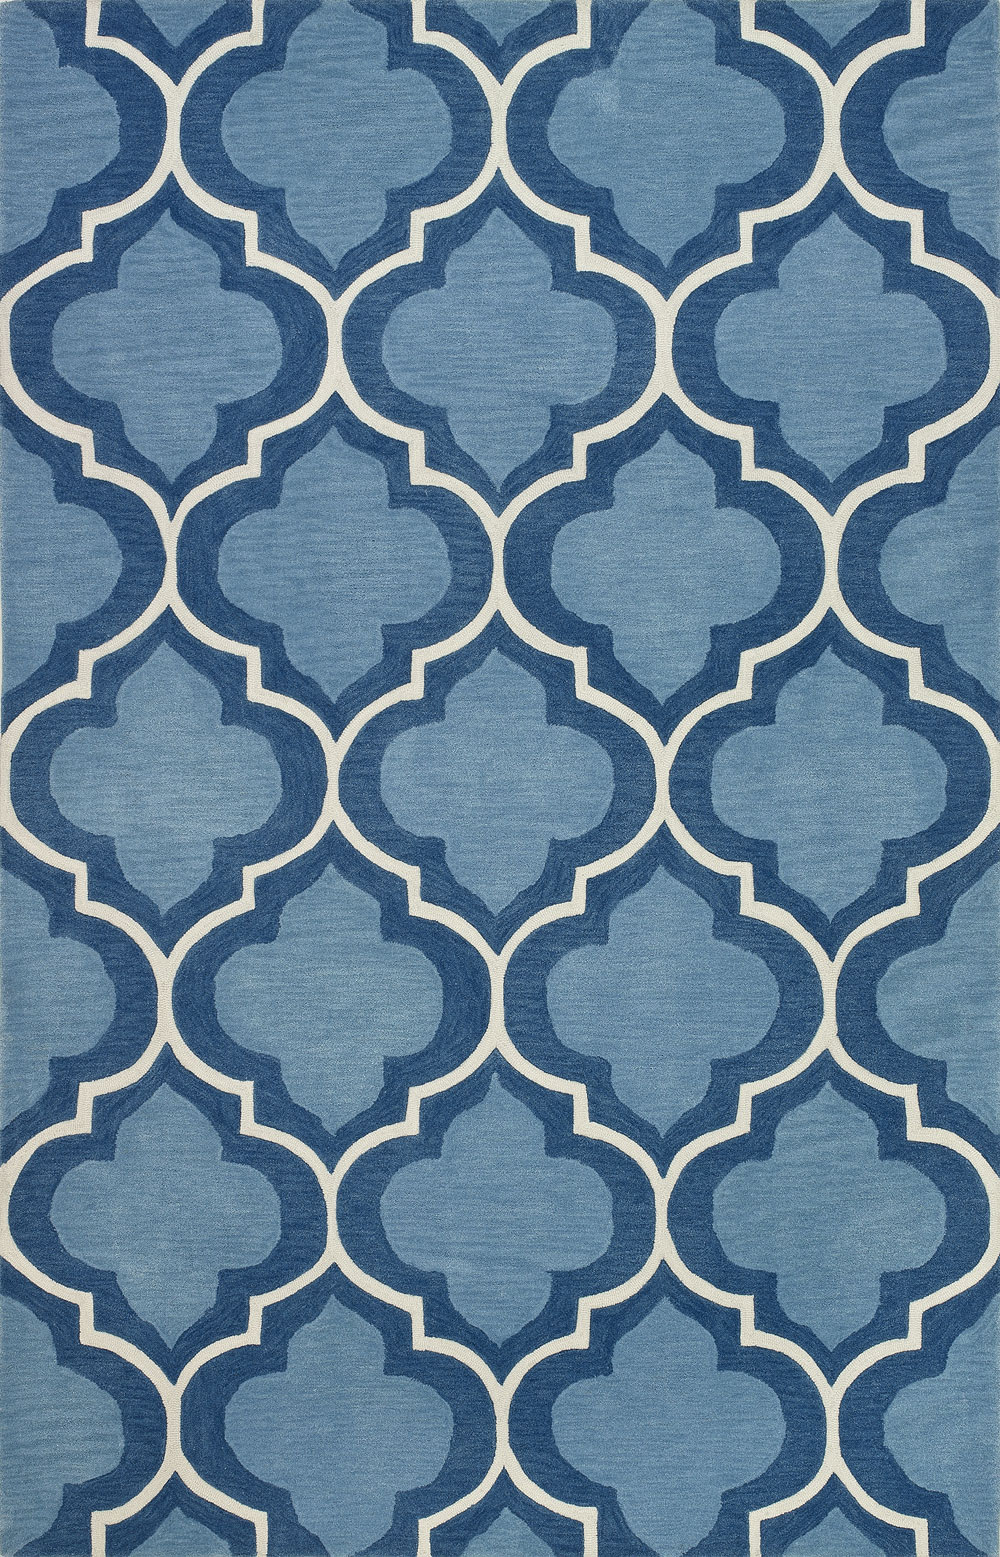 Dalyn Infinity IF3 Seaglass Rug